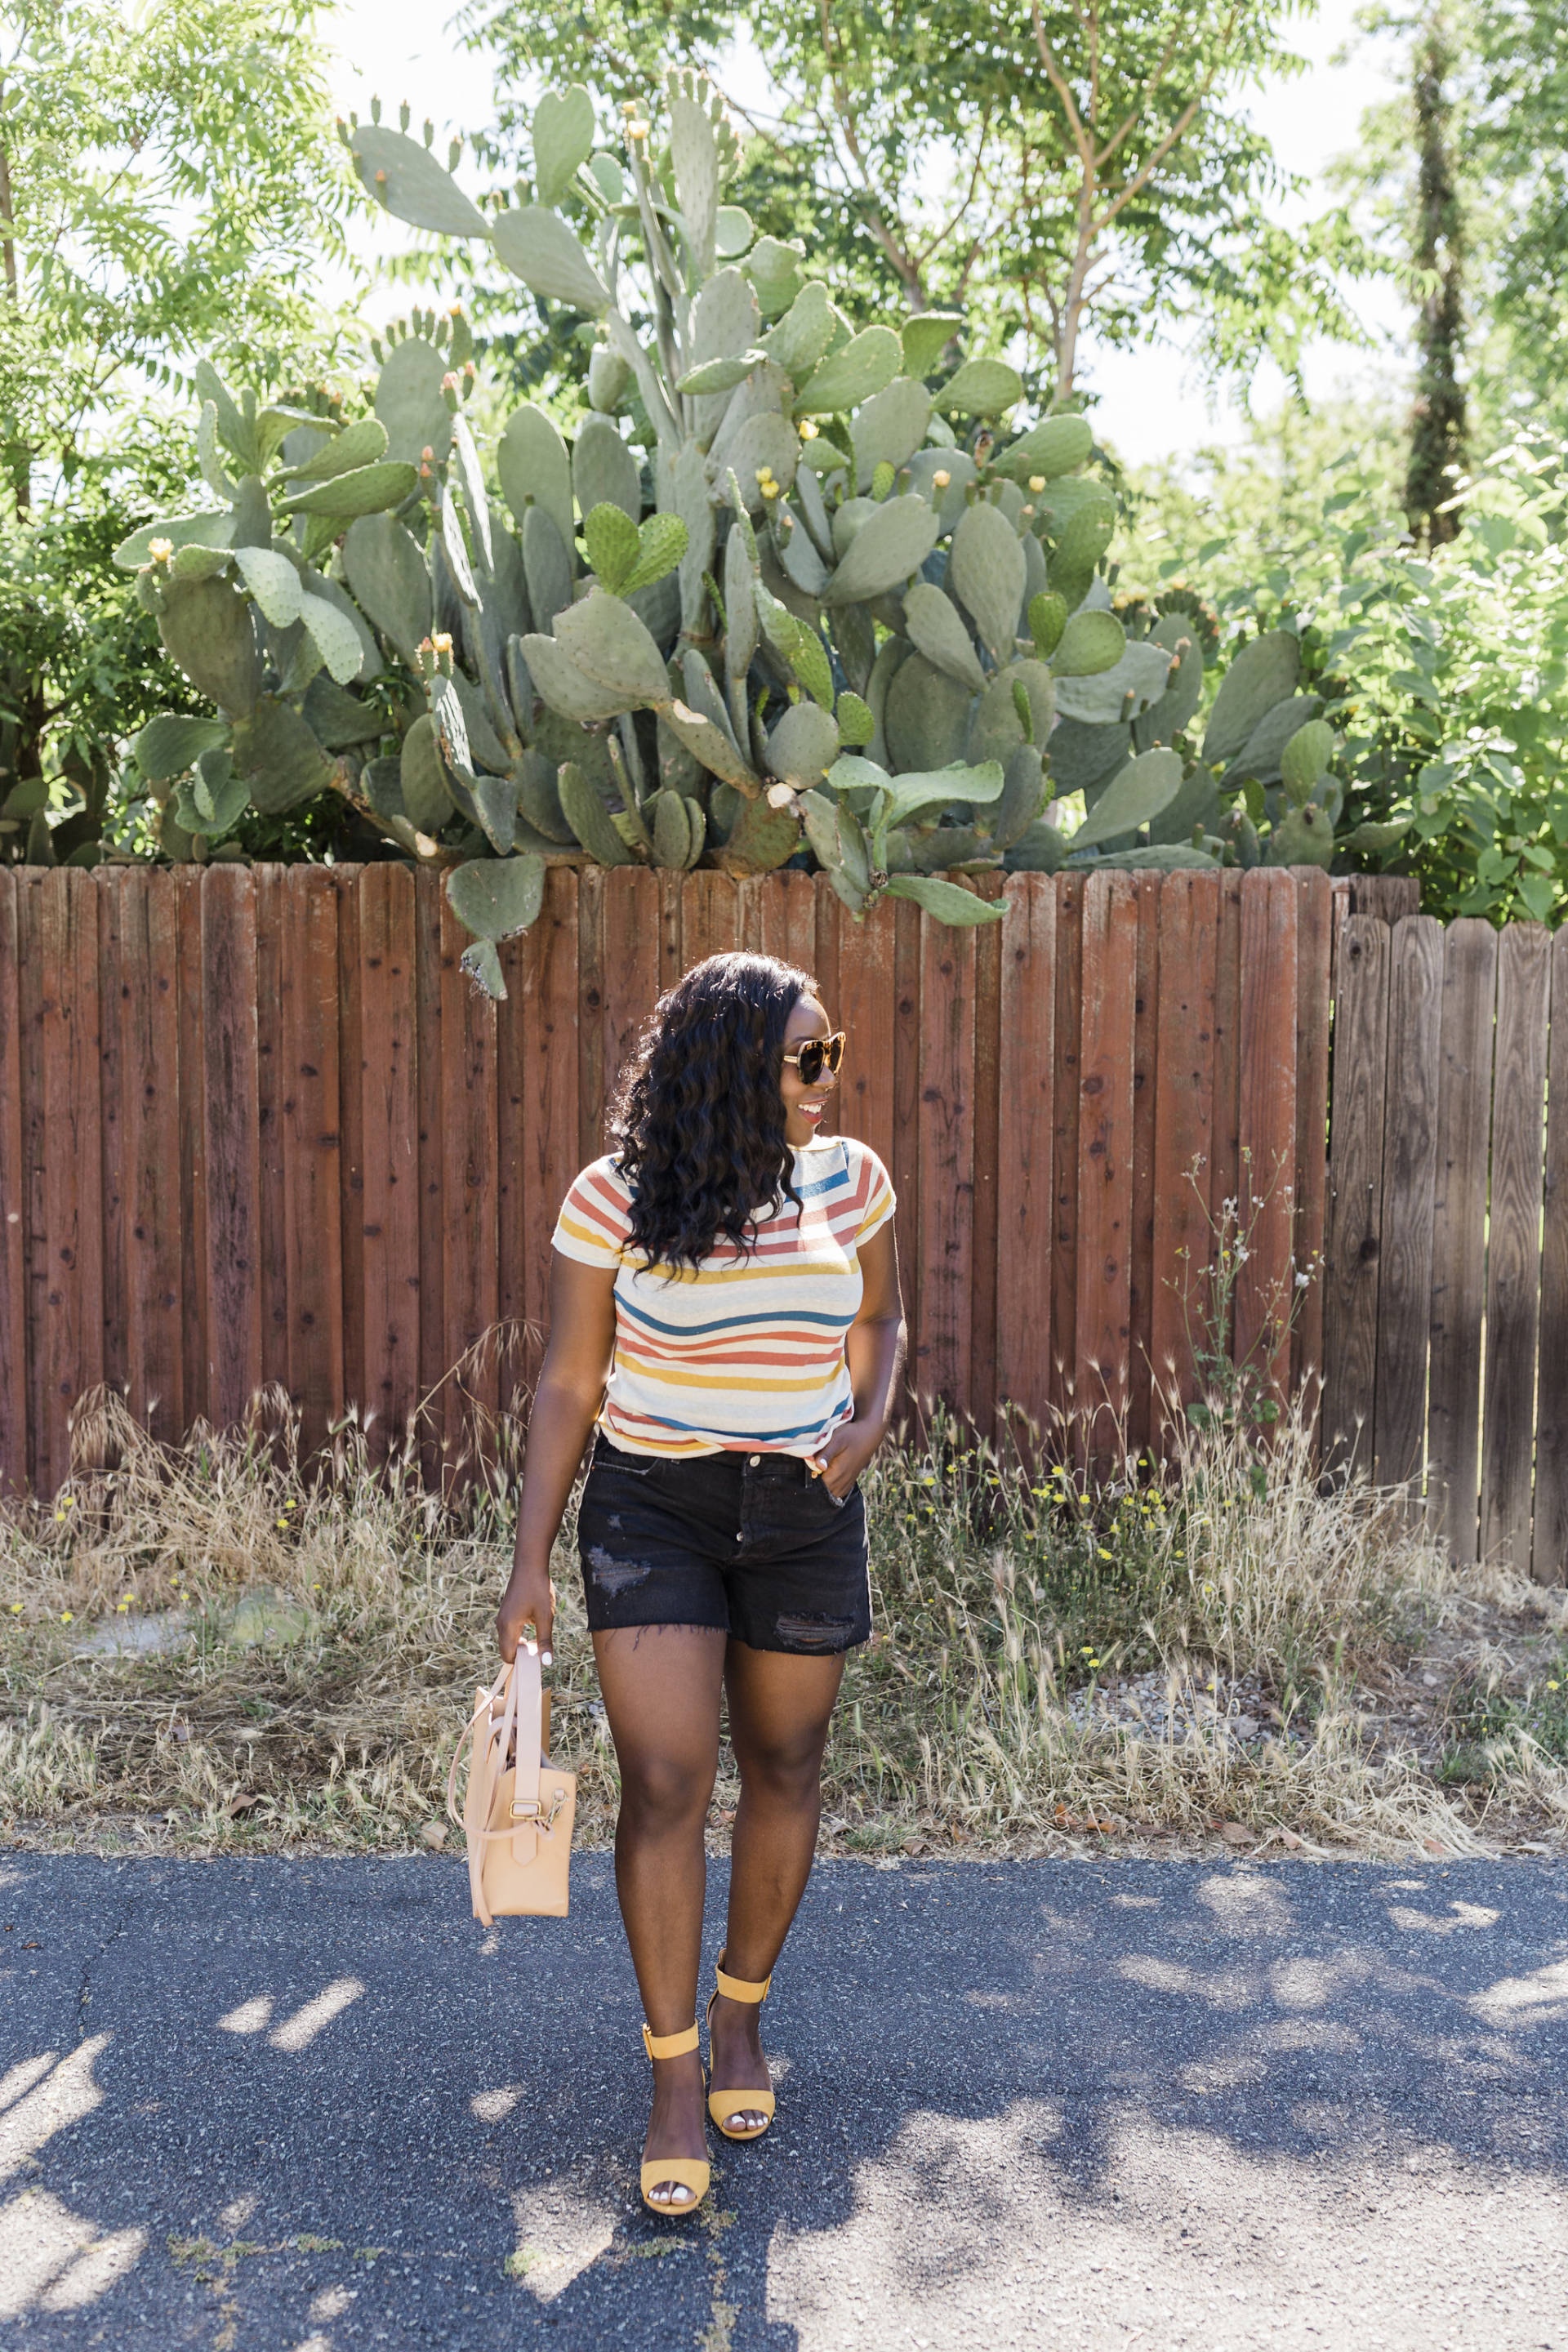 Denim Shorts For Summer: Cute, stylish shorts for summer that won't break the bank!